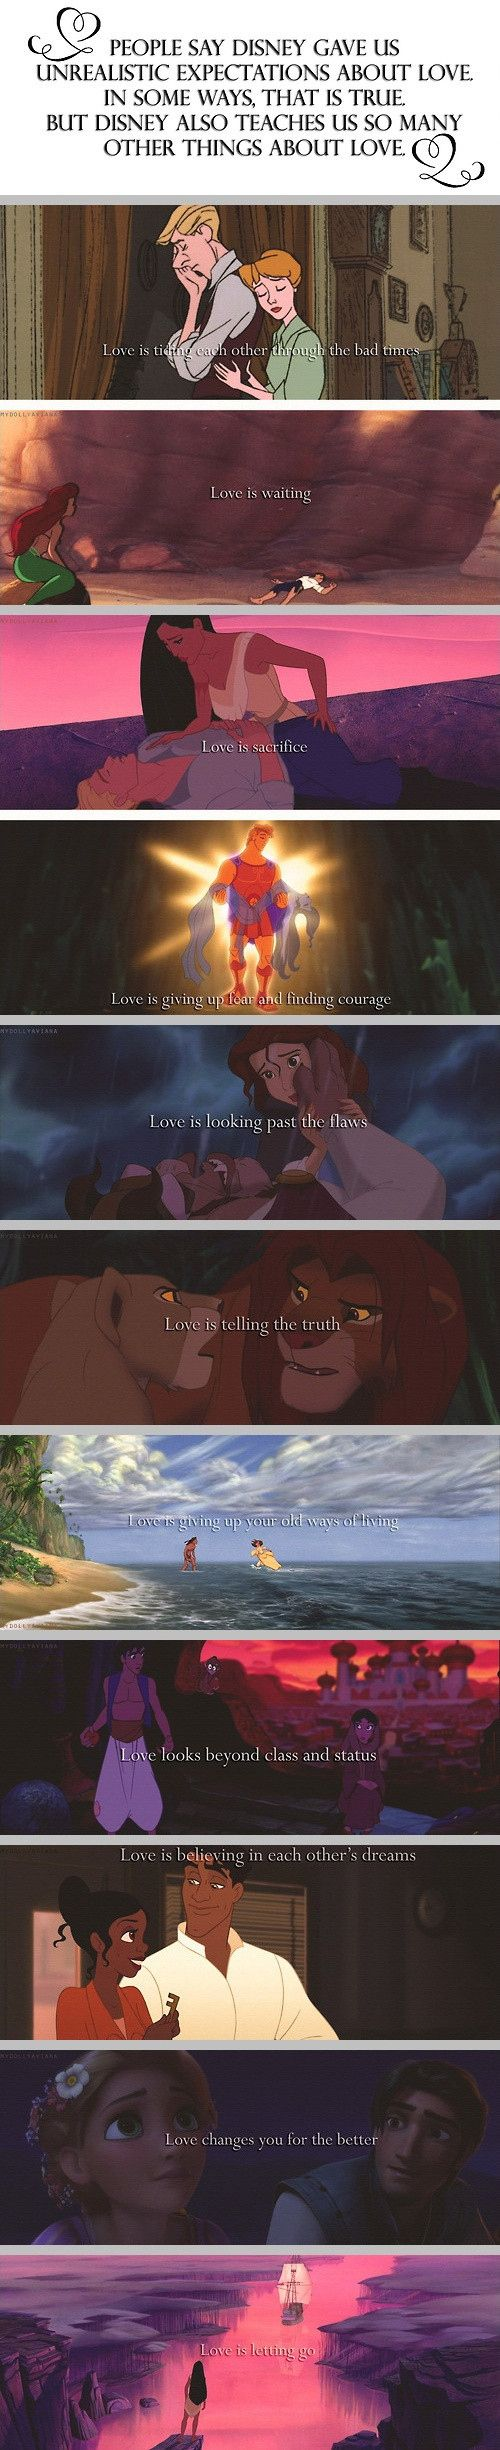 Lessons in Love from Disney| 25 Signs You Grew Up With Disney